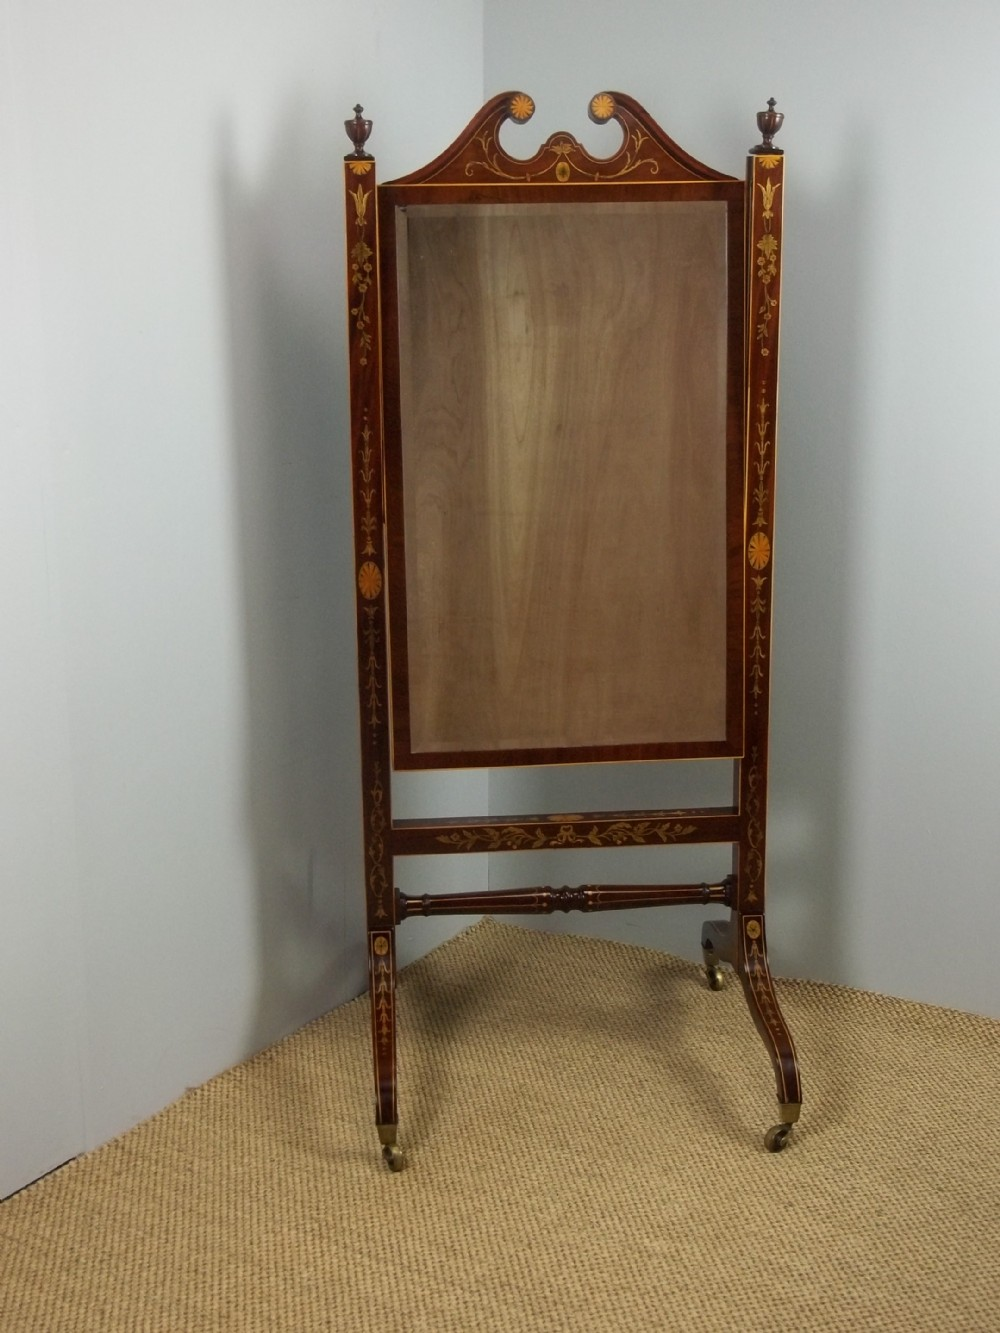 a georgian regency mahogany marquetry inlaid adjustable cheval dressing room looking glass mirror c1800